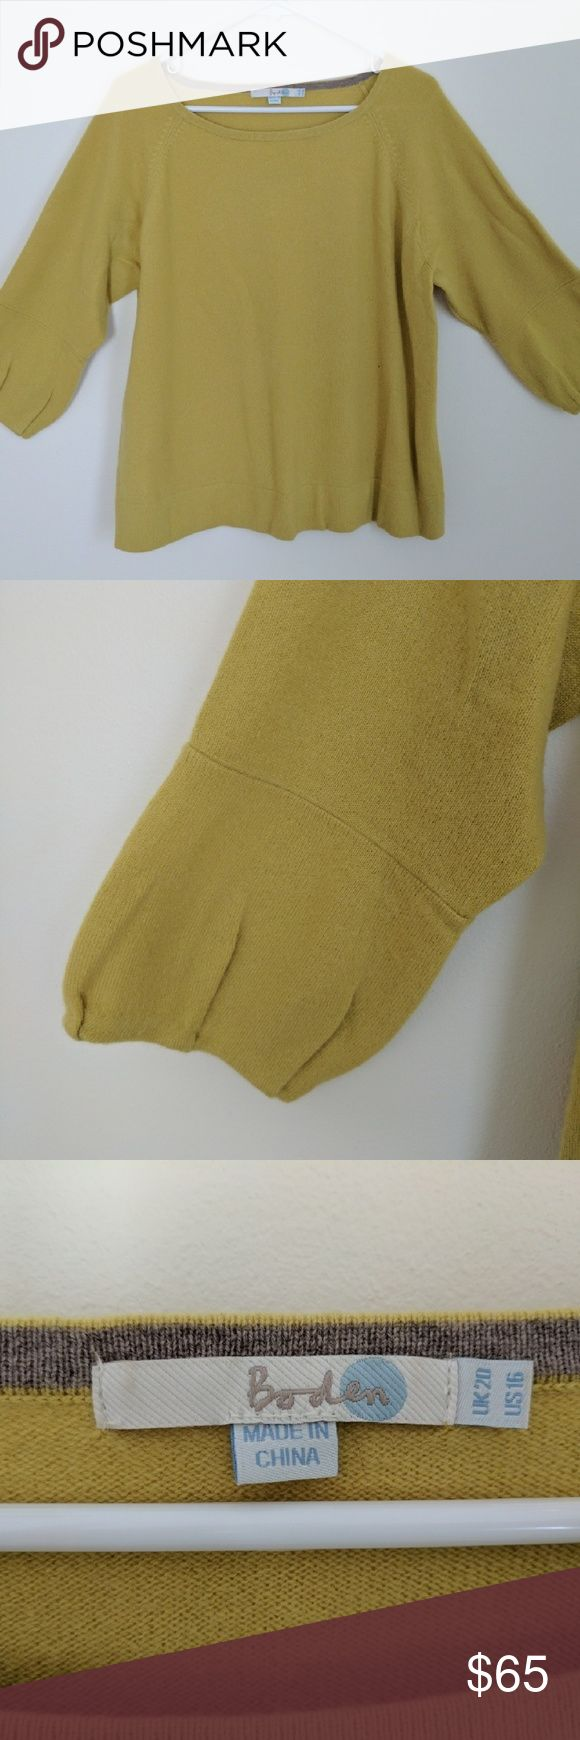 Cashmere Boden sulfur color sweater 100% cashmere Boden sulfur color sweater, slight bell sleeve at base of 3/4 sleeve.  Very small hole on lower front, discounted accordingly Boden Sweaters